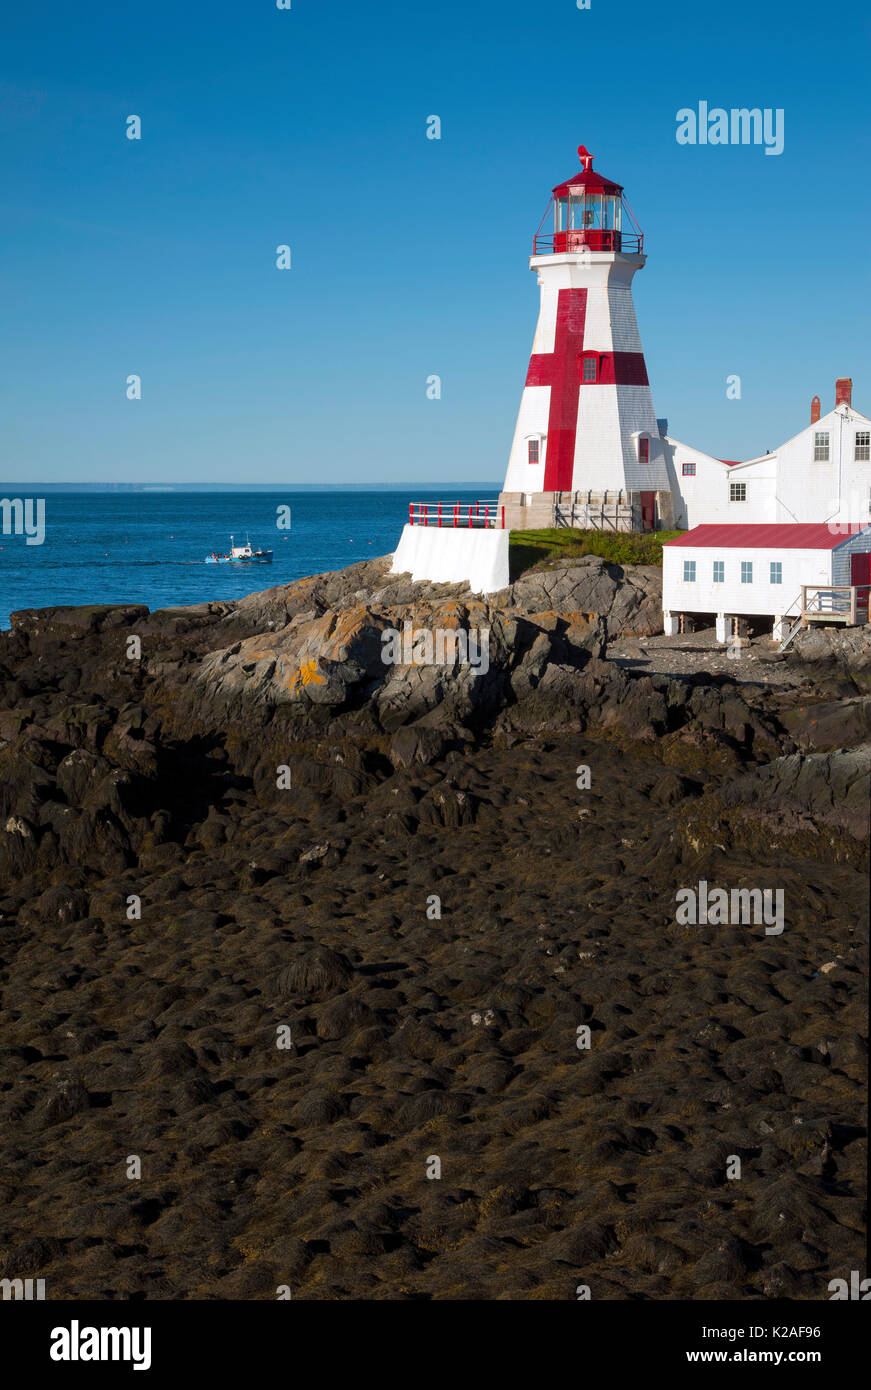 Head Harbor light, also referred to as East Quoddy Head lighthouse, guides boat around Campobello Island during low tide along the Canadian     coast. - Stock Image